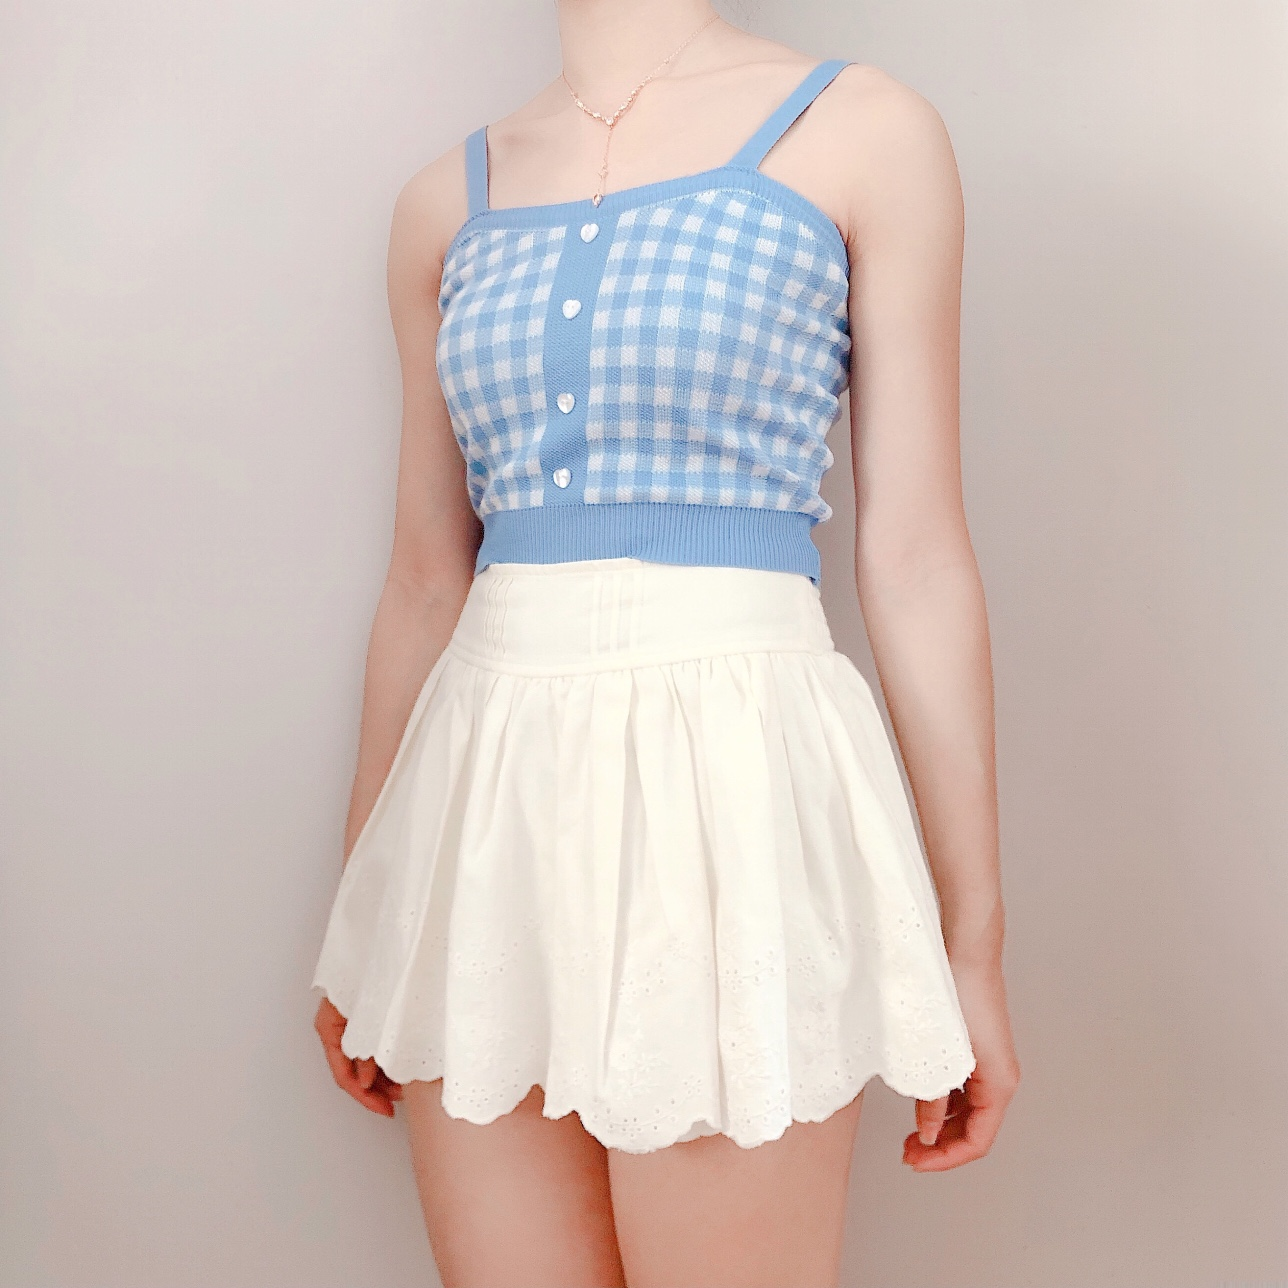 Blue Gingham Knit Camisole ♡ Heart buttons ♡ Super